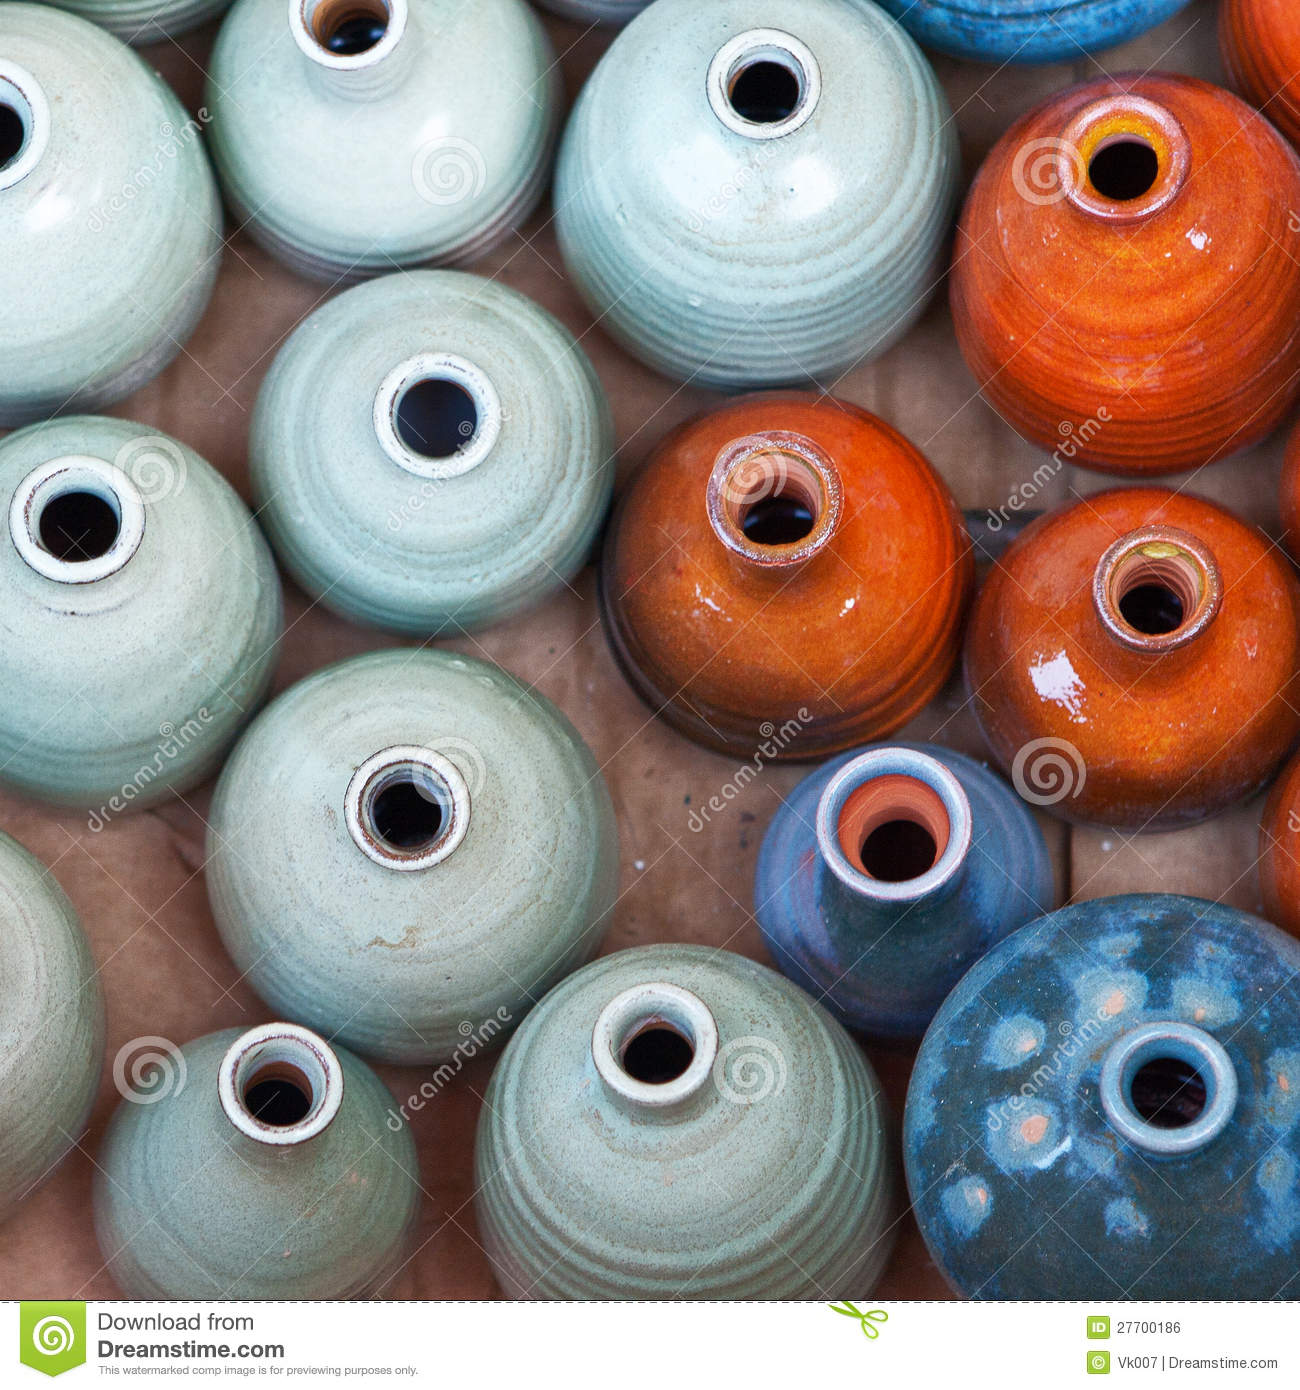 Group of colorful ceramic pots.